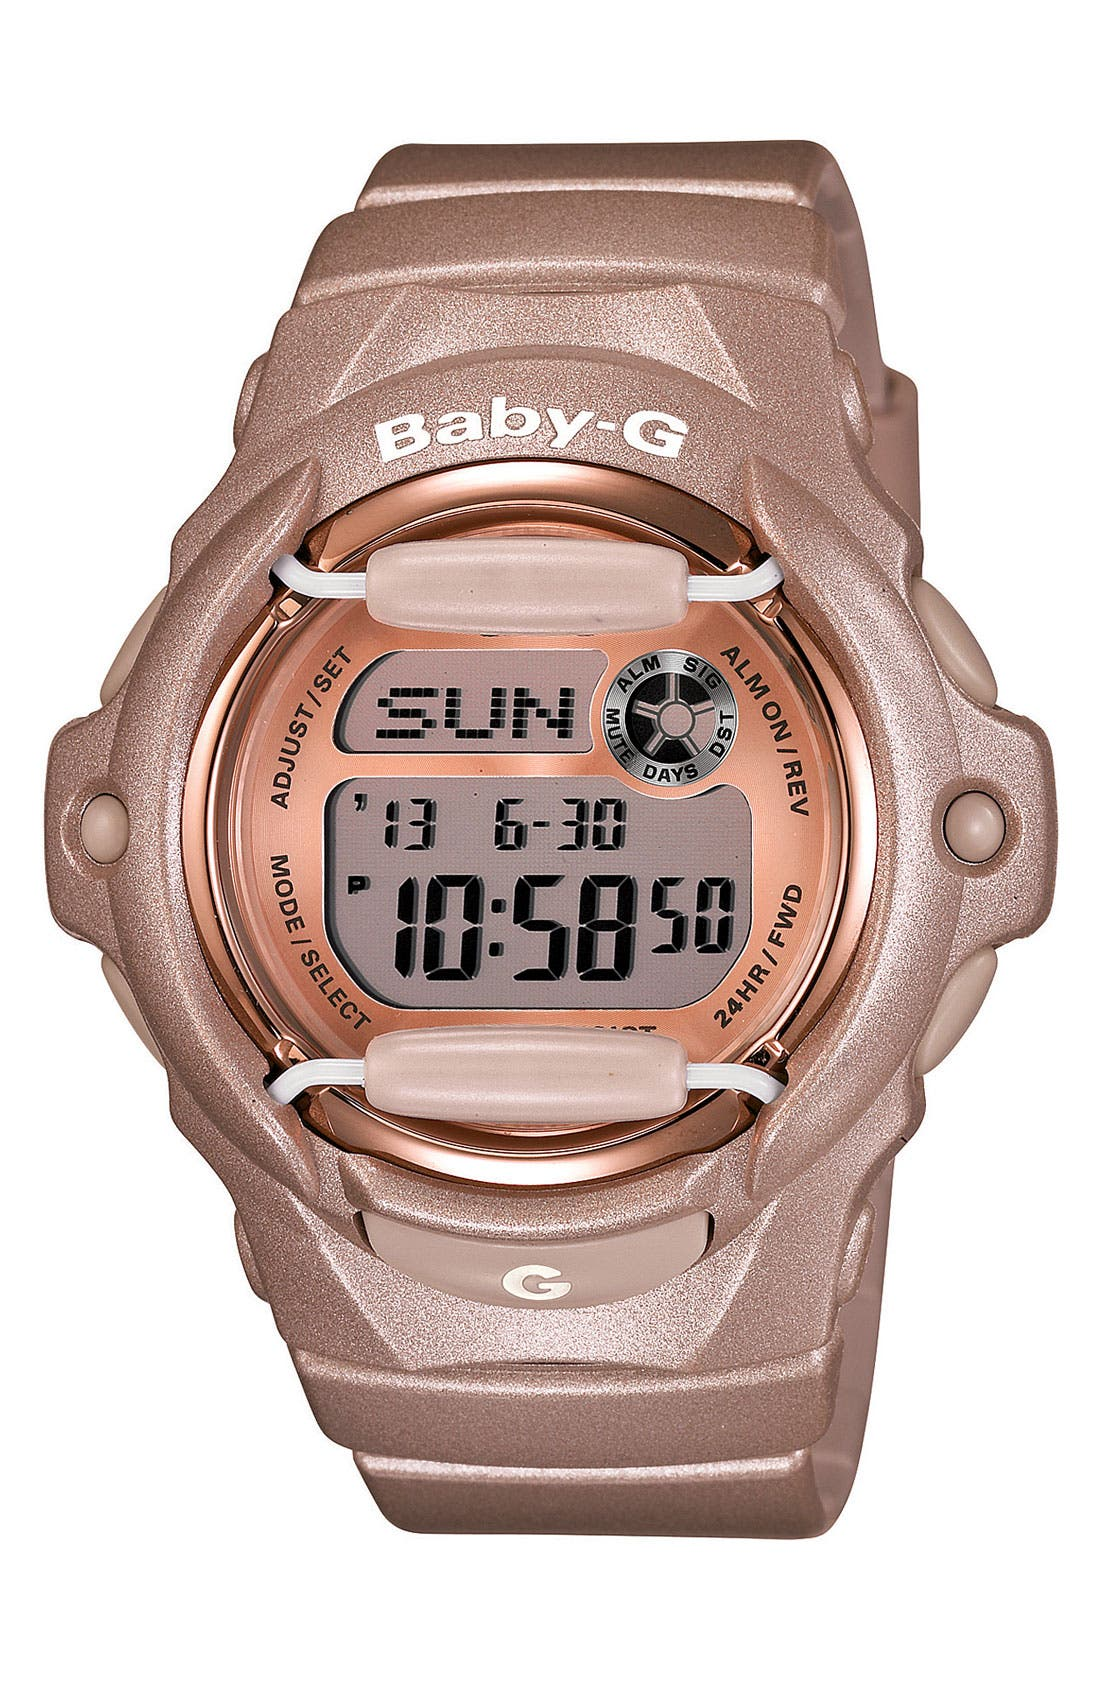 G-SHOCK BABY-G Baby-G Pink Dial Digital Watch, 46mm